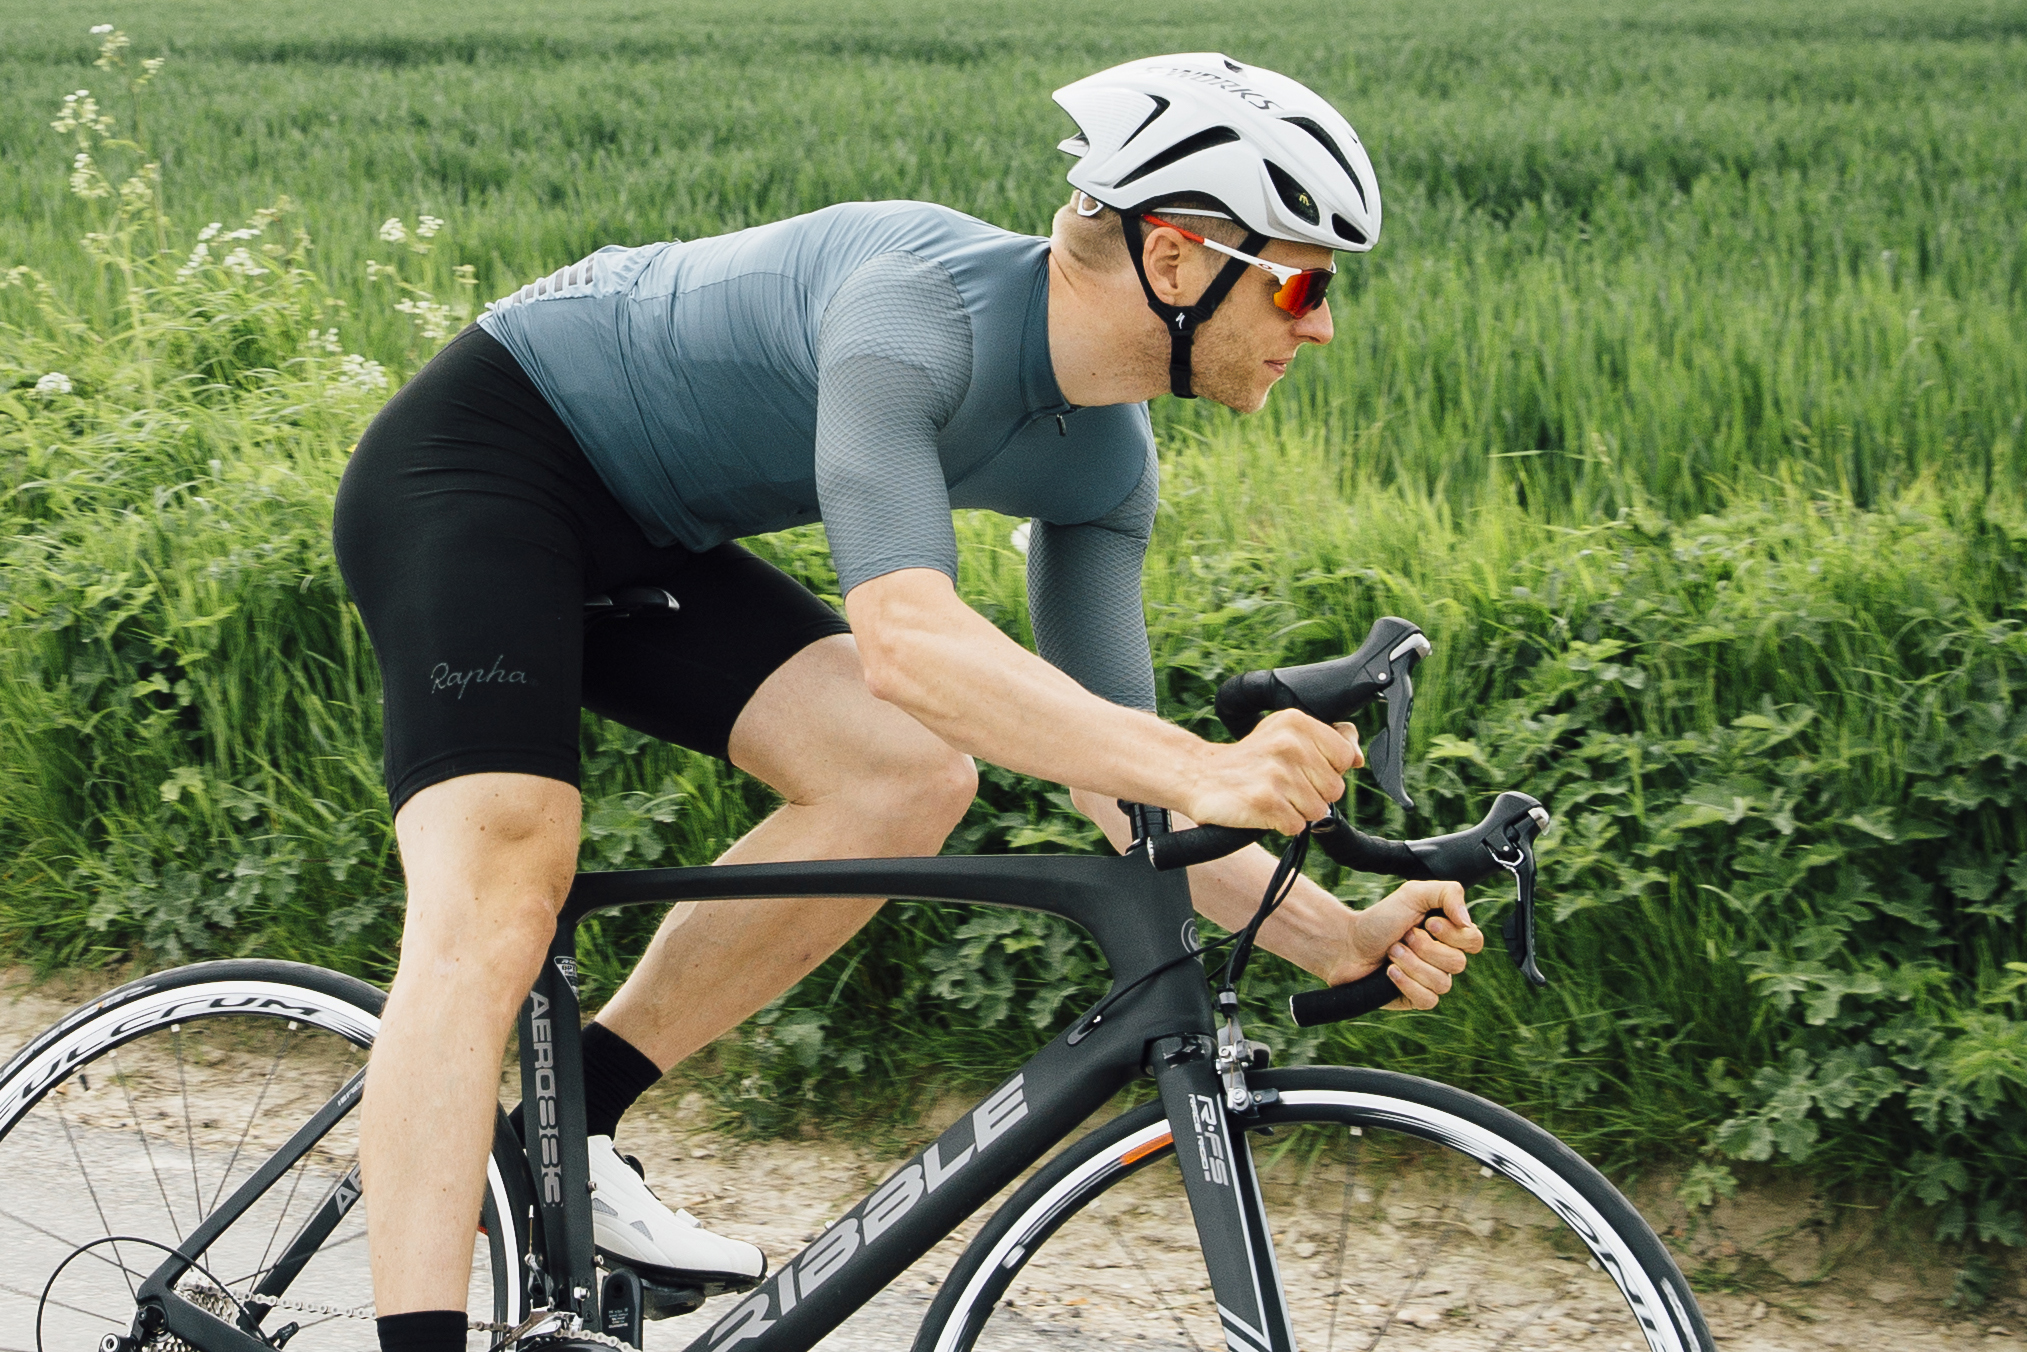 f6fa1d7d21c Best cycling shorts reviewed 2019 - Cycling Weekly